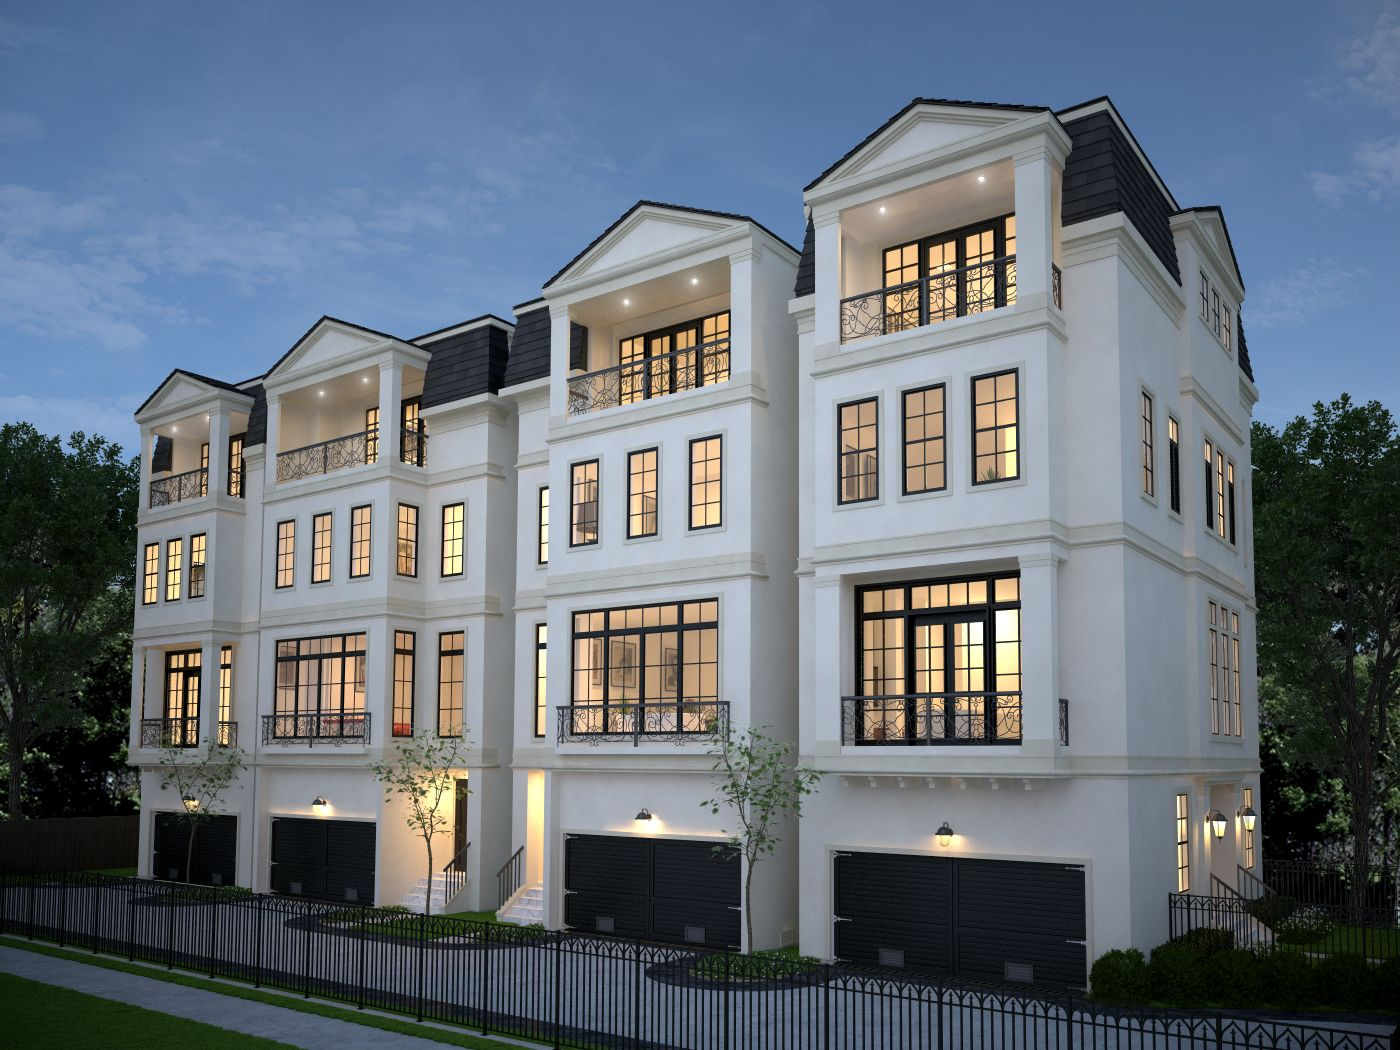 Four 4 Story Townhomes In Houston By Preston Wood Assoc: houston home design